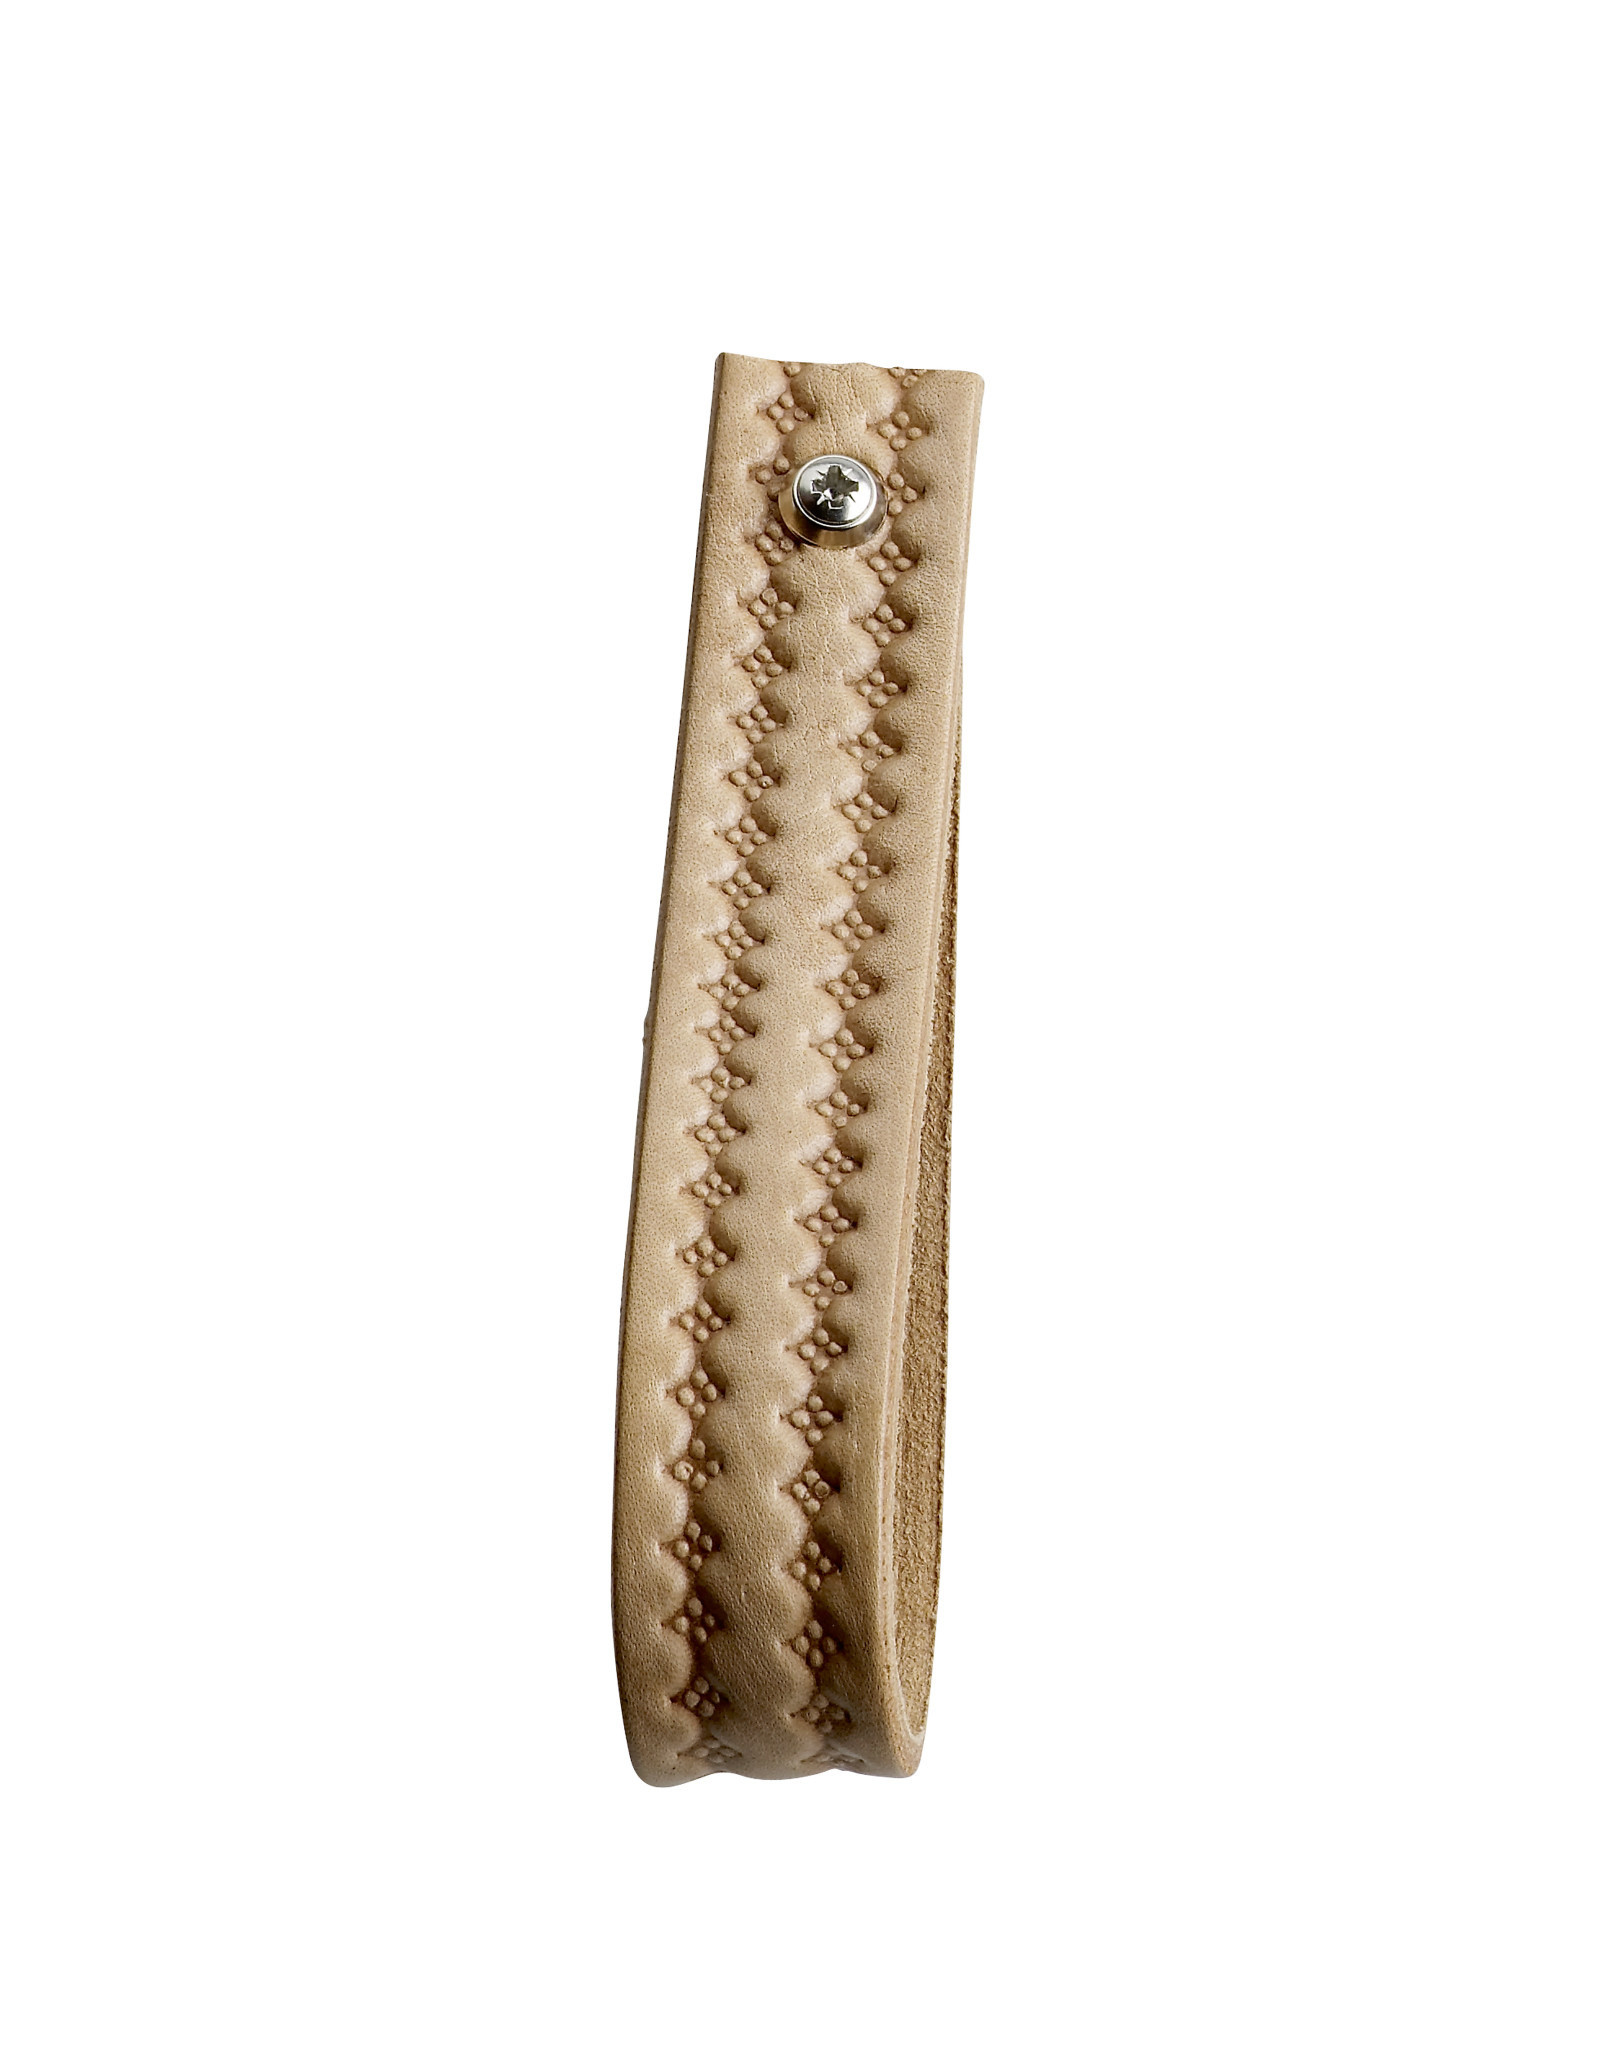 TineK Home Leather Strap - Natural